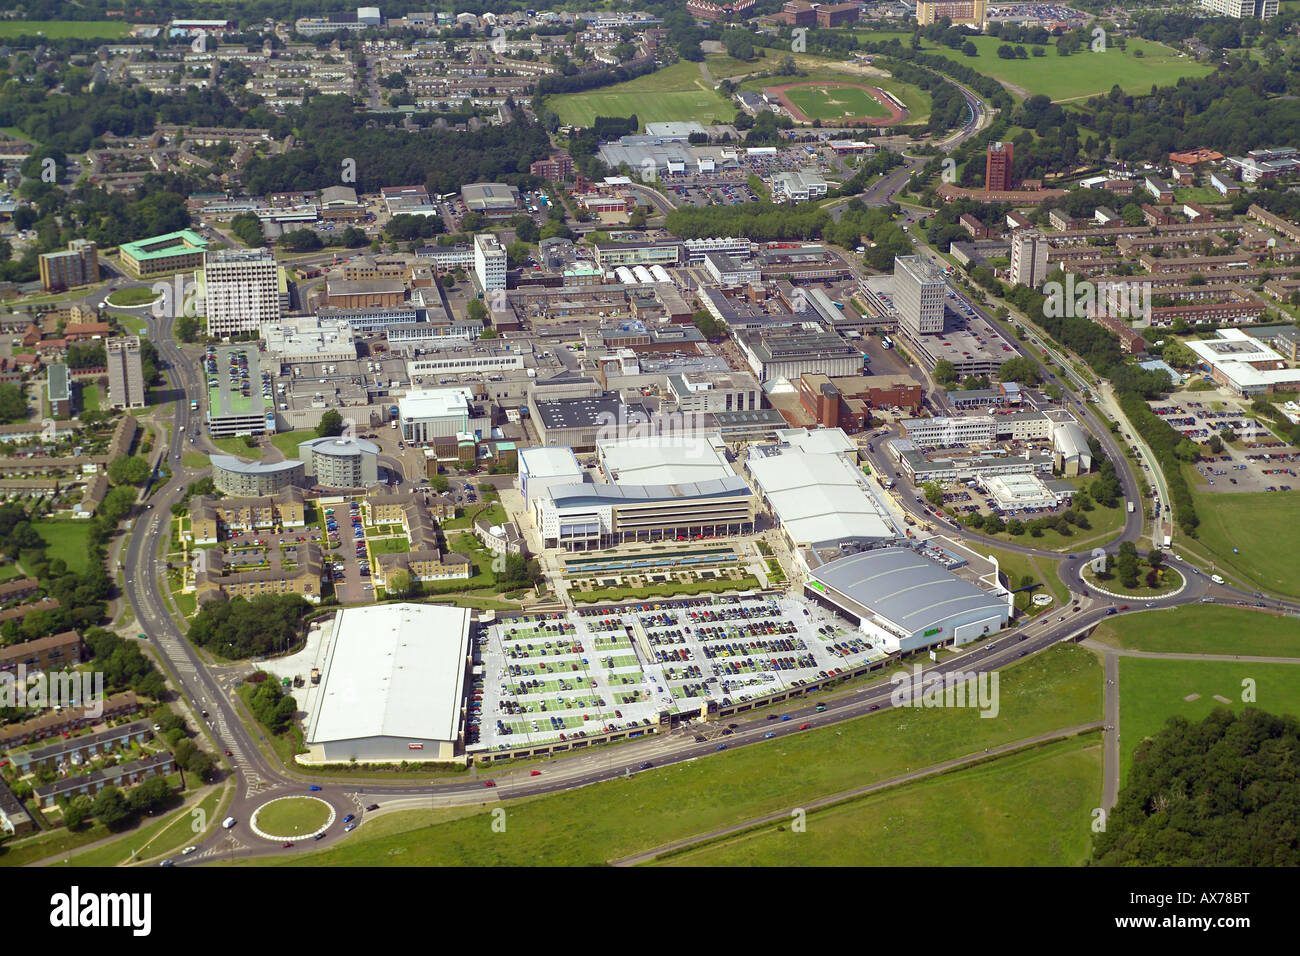 Aerial view of Harlow Town Centre featuring the shopping centre, offices and public buildings Stock Photo